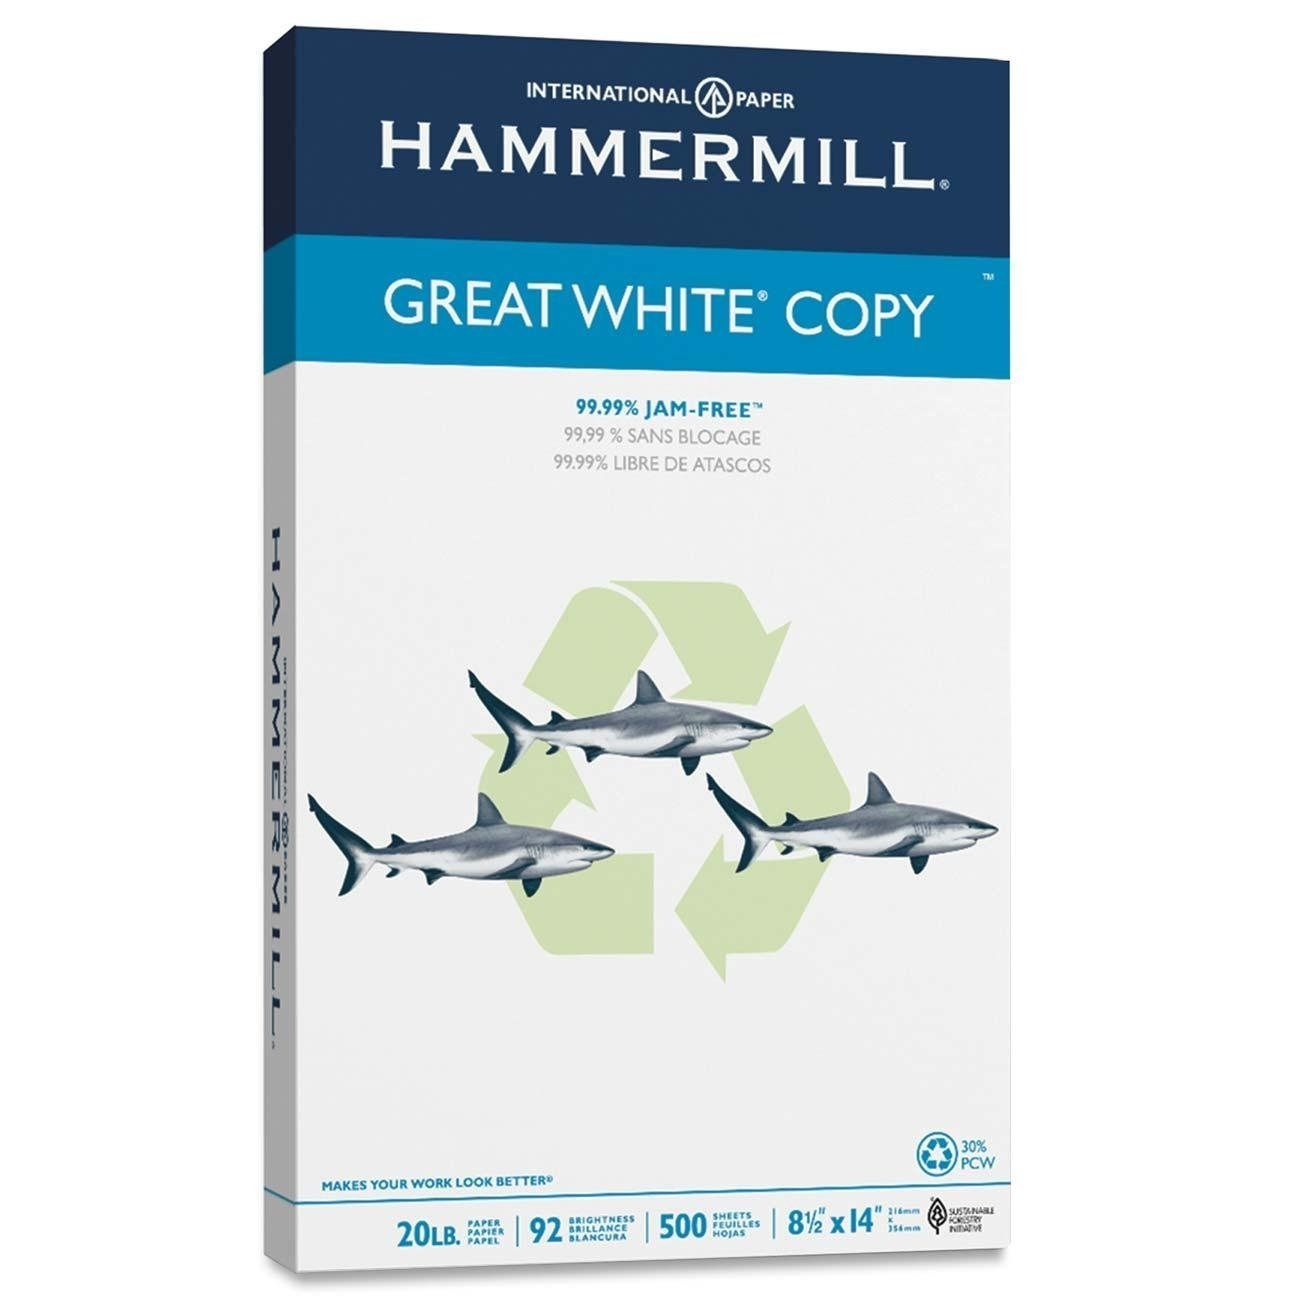 Hammermill 8.5 x 14 Great White Recycled Copy Paper 92 Brightness 20lb 500/Ream (86704)